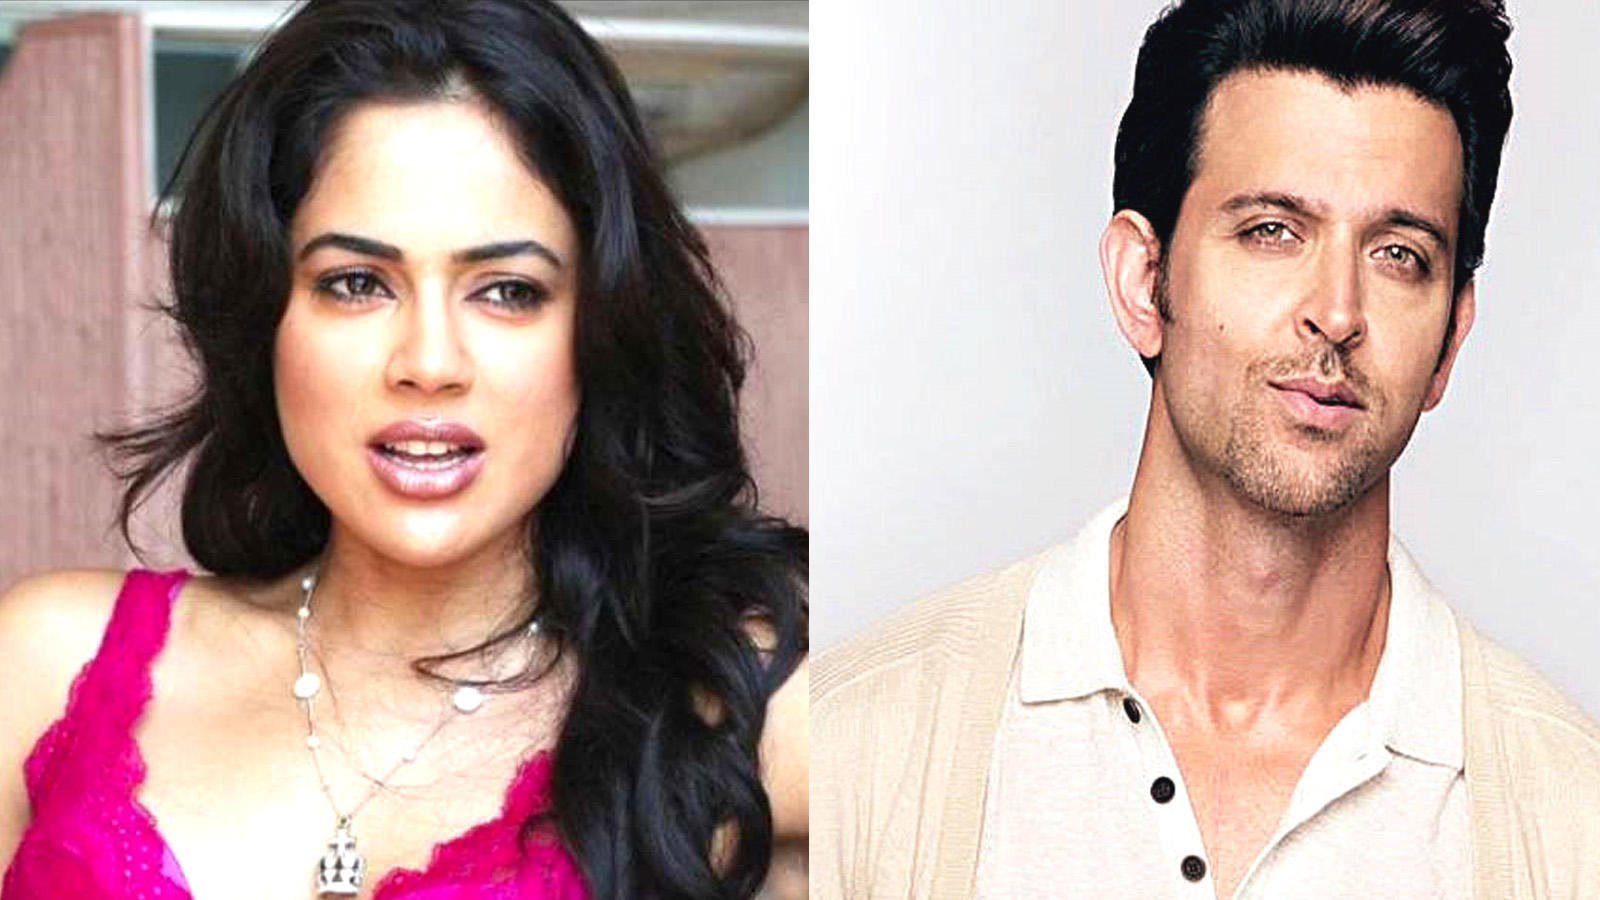 sameera-reddy-reveals-she-had-speech-issues-and-hrithik-roshan-helped-her-overcome-it